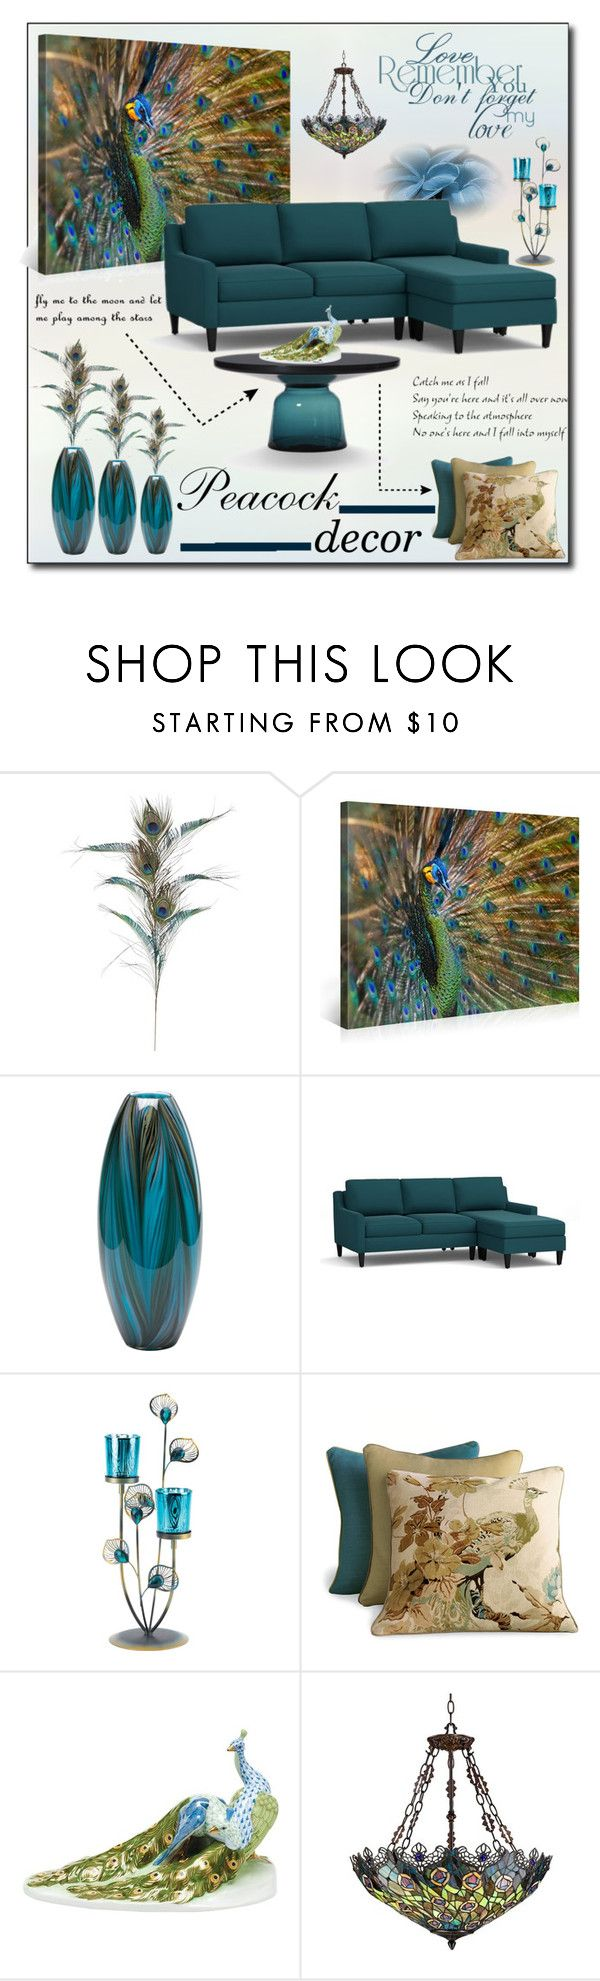 """""""Decorate with Peacock."""" by patria on Polyvore featuring interior, interiors, interior design, home, home decor, interior decorating, Pier 1 Imports, Pottery Barn, ClassiCon and Old Hickory Tannery"""